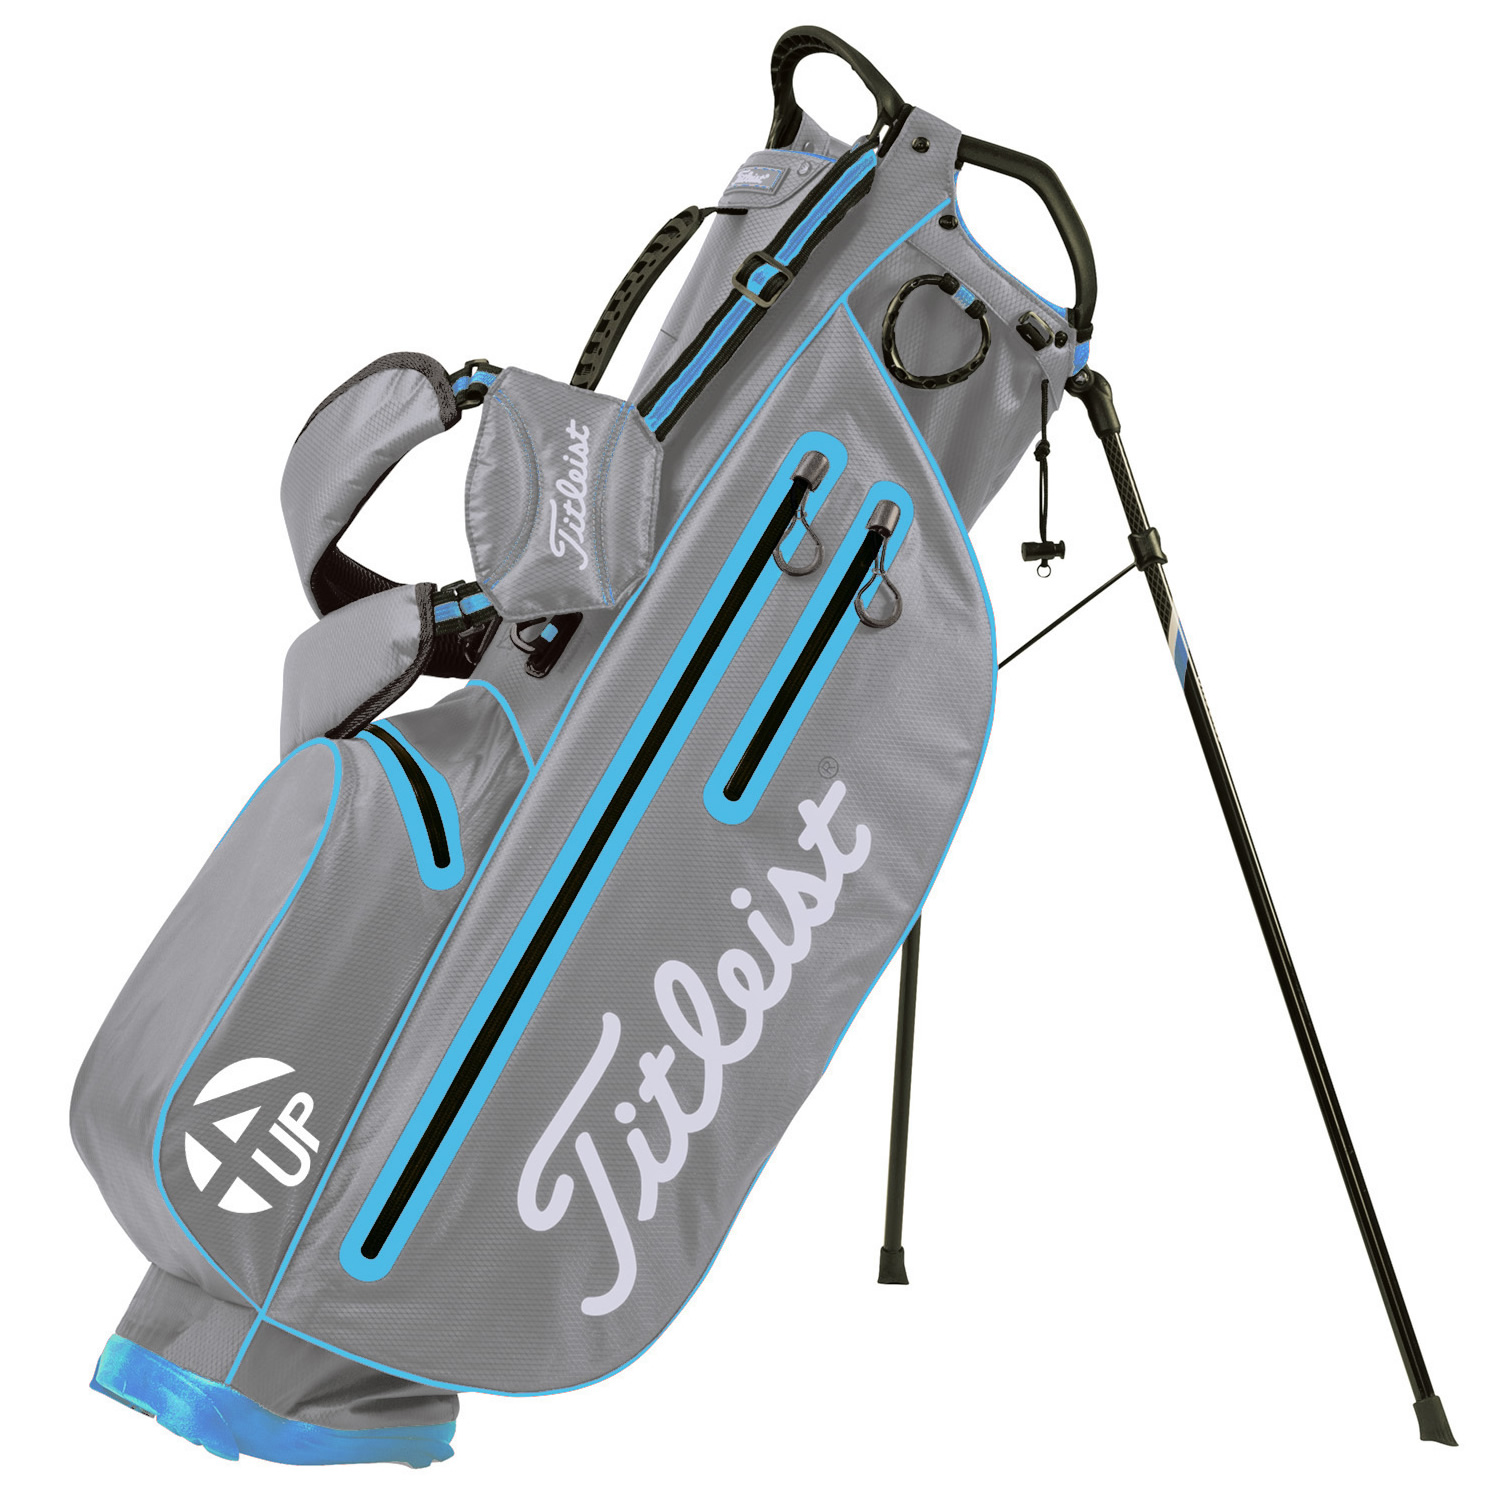 Taylormade Golf Bag >> Titleist StaDry Light 4UP Waterproof Golf Stand Bag Cool ...